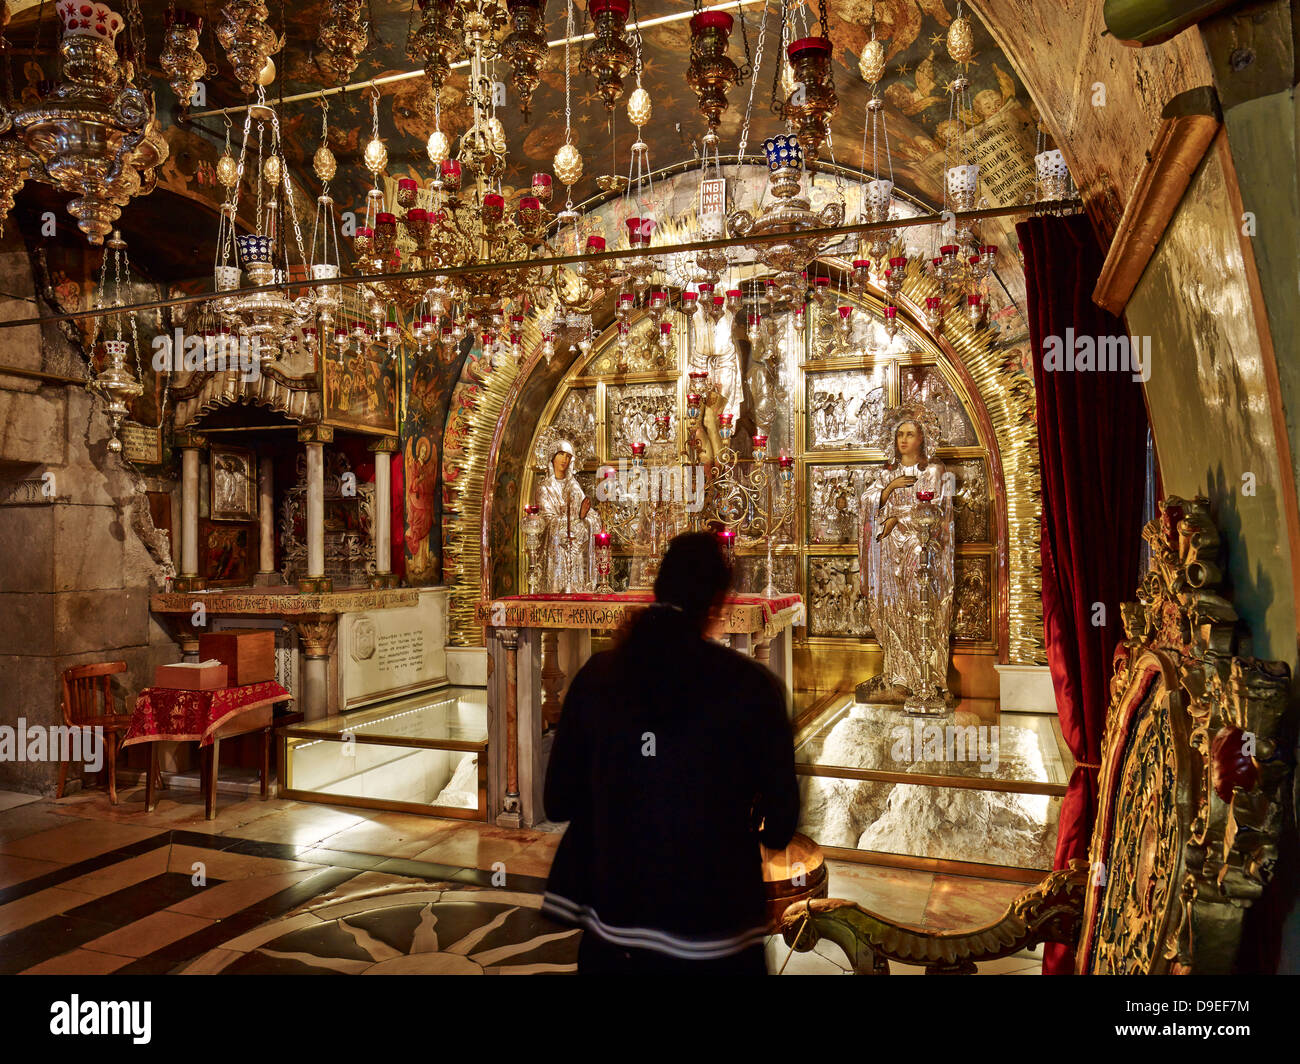 Crucifixion altar in the Church of Holy Sepulchre on Golgotha in Jerusalem, Israel - Stock Image